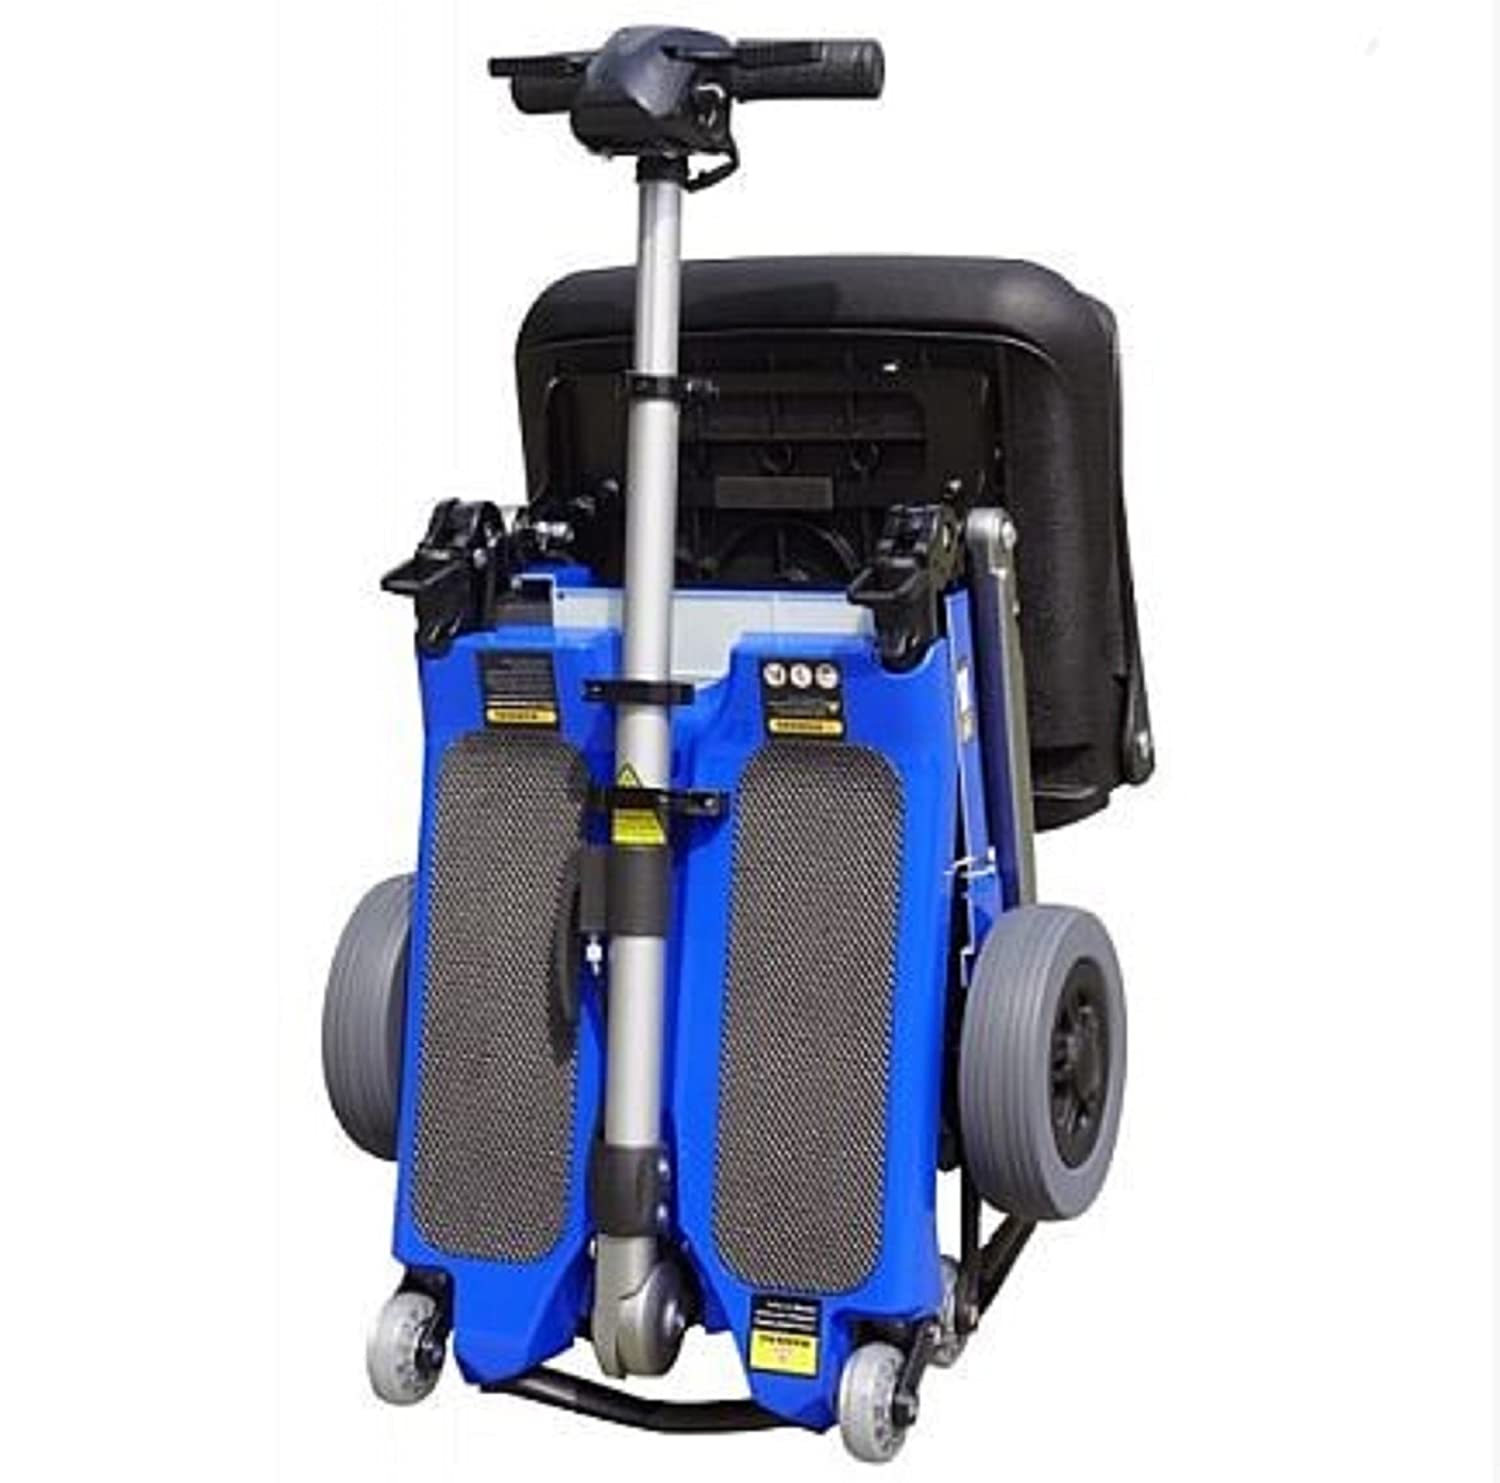 Amazon.com: Free Rider USA - Luggie Elite - Compact Lightweight Foldable Scooter - 4-Wheel - Blue: Health & Personal Care